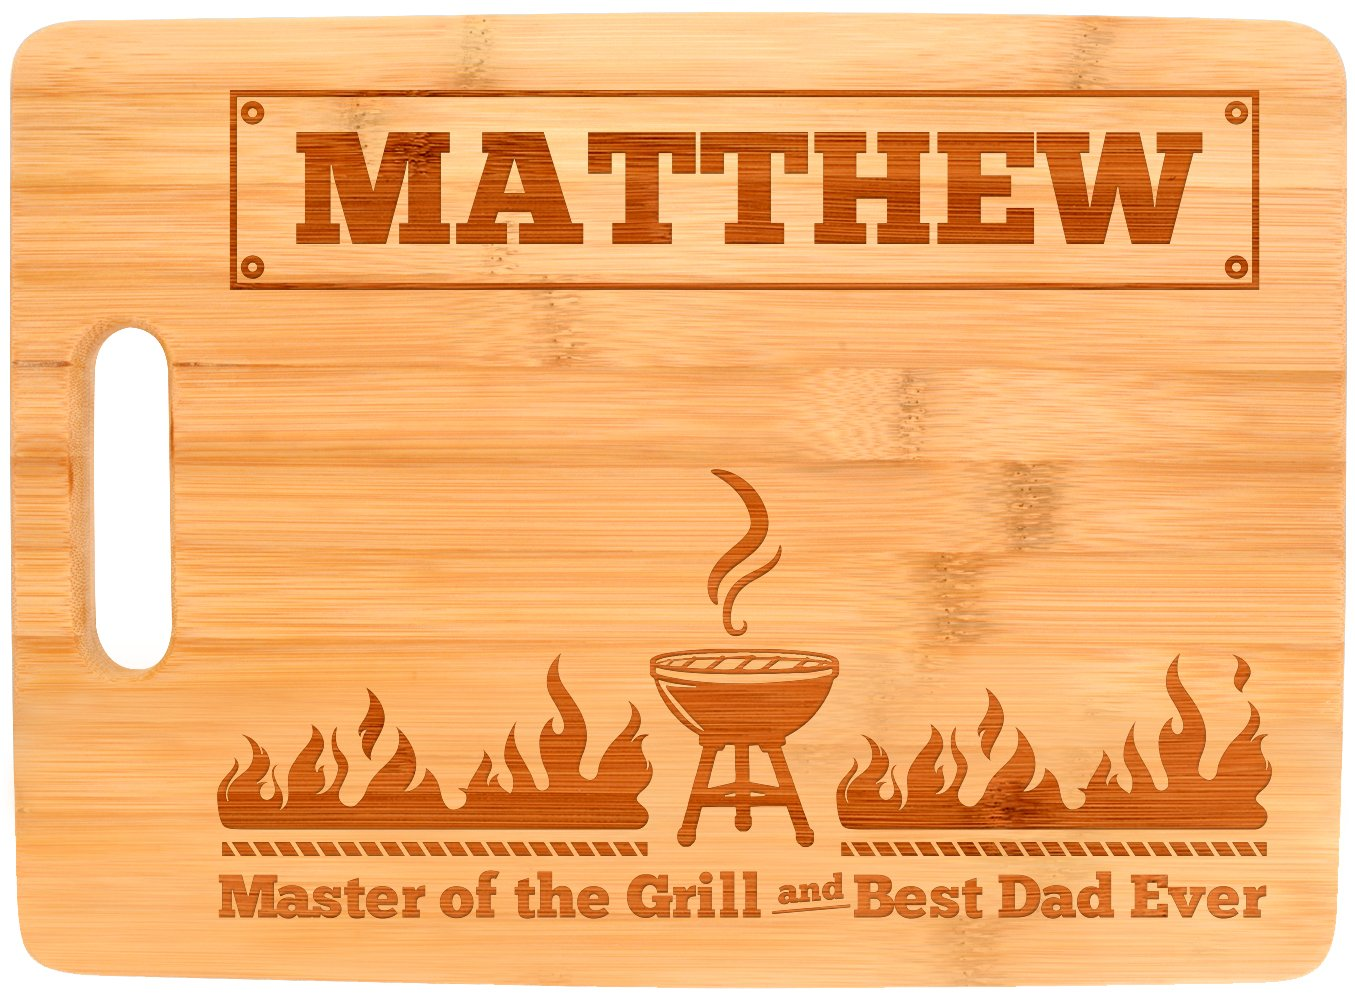 Personalized Grill Gifts Custom Name Master of the Grill and Best Dad Ever Personalized Fathers Day Gifts from Daughter Father Son Gifts Dad Grill Big Rectangle Bamboo Personalized Cutting Board by Personalized Gifts (Image #2)